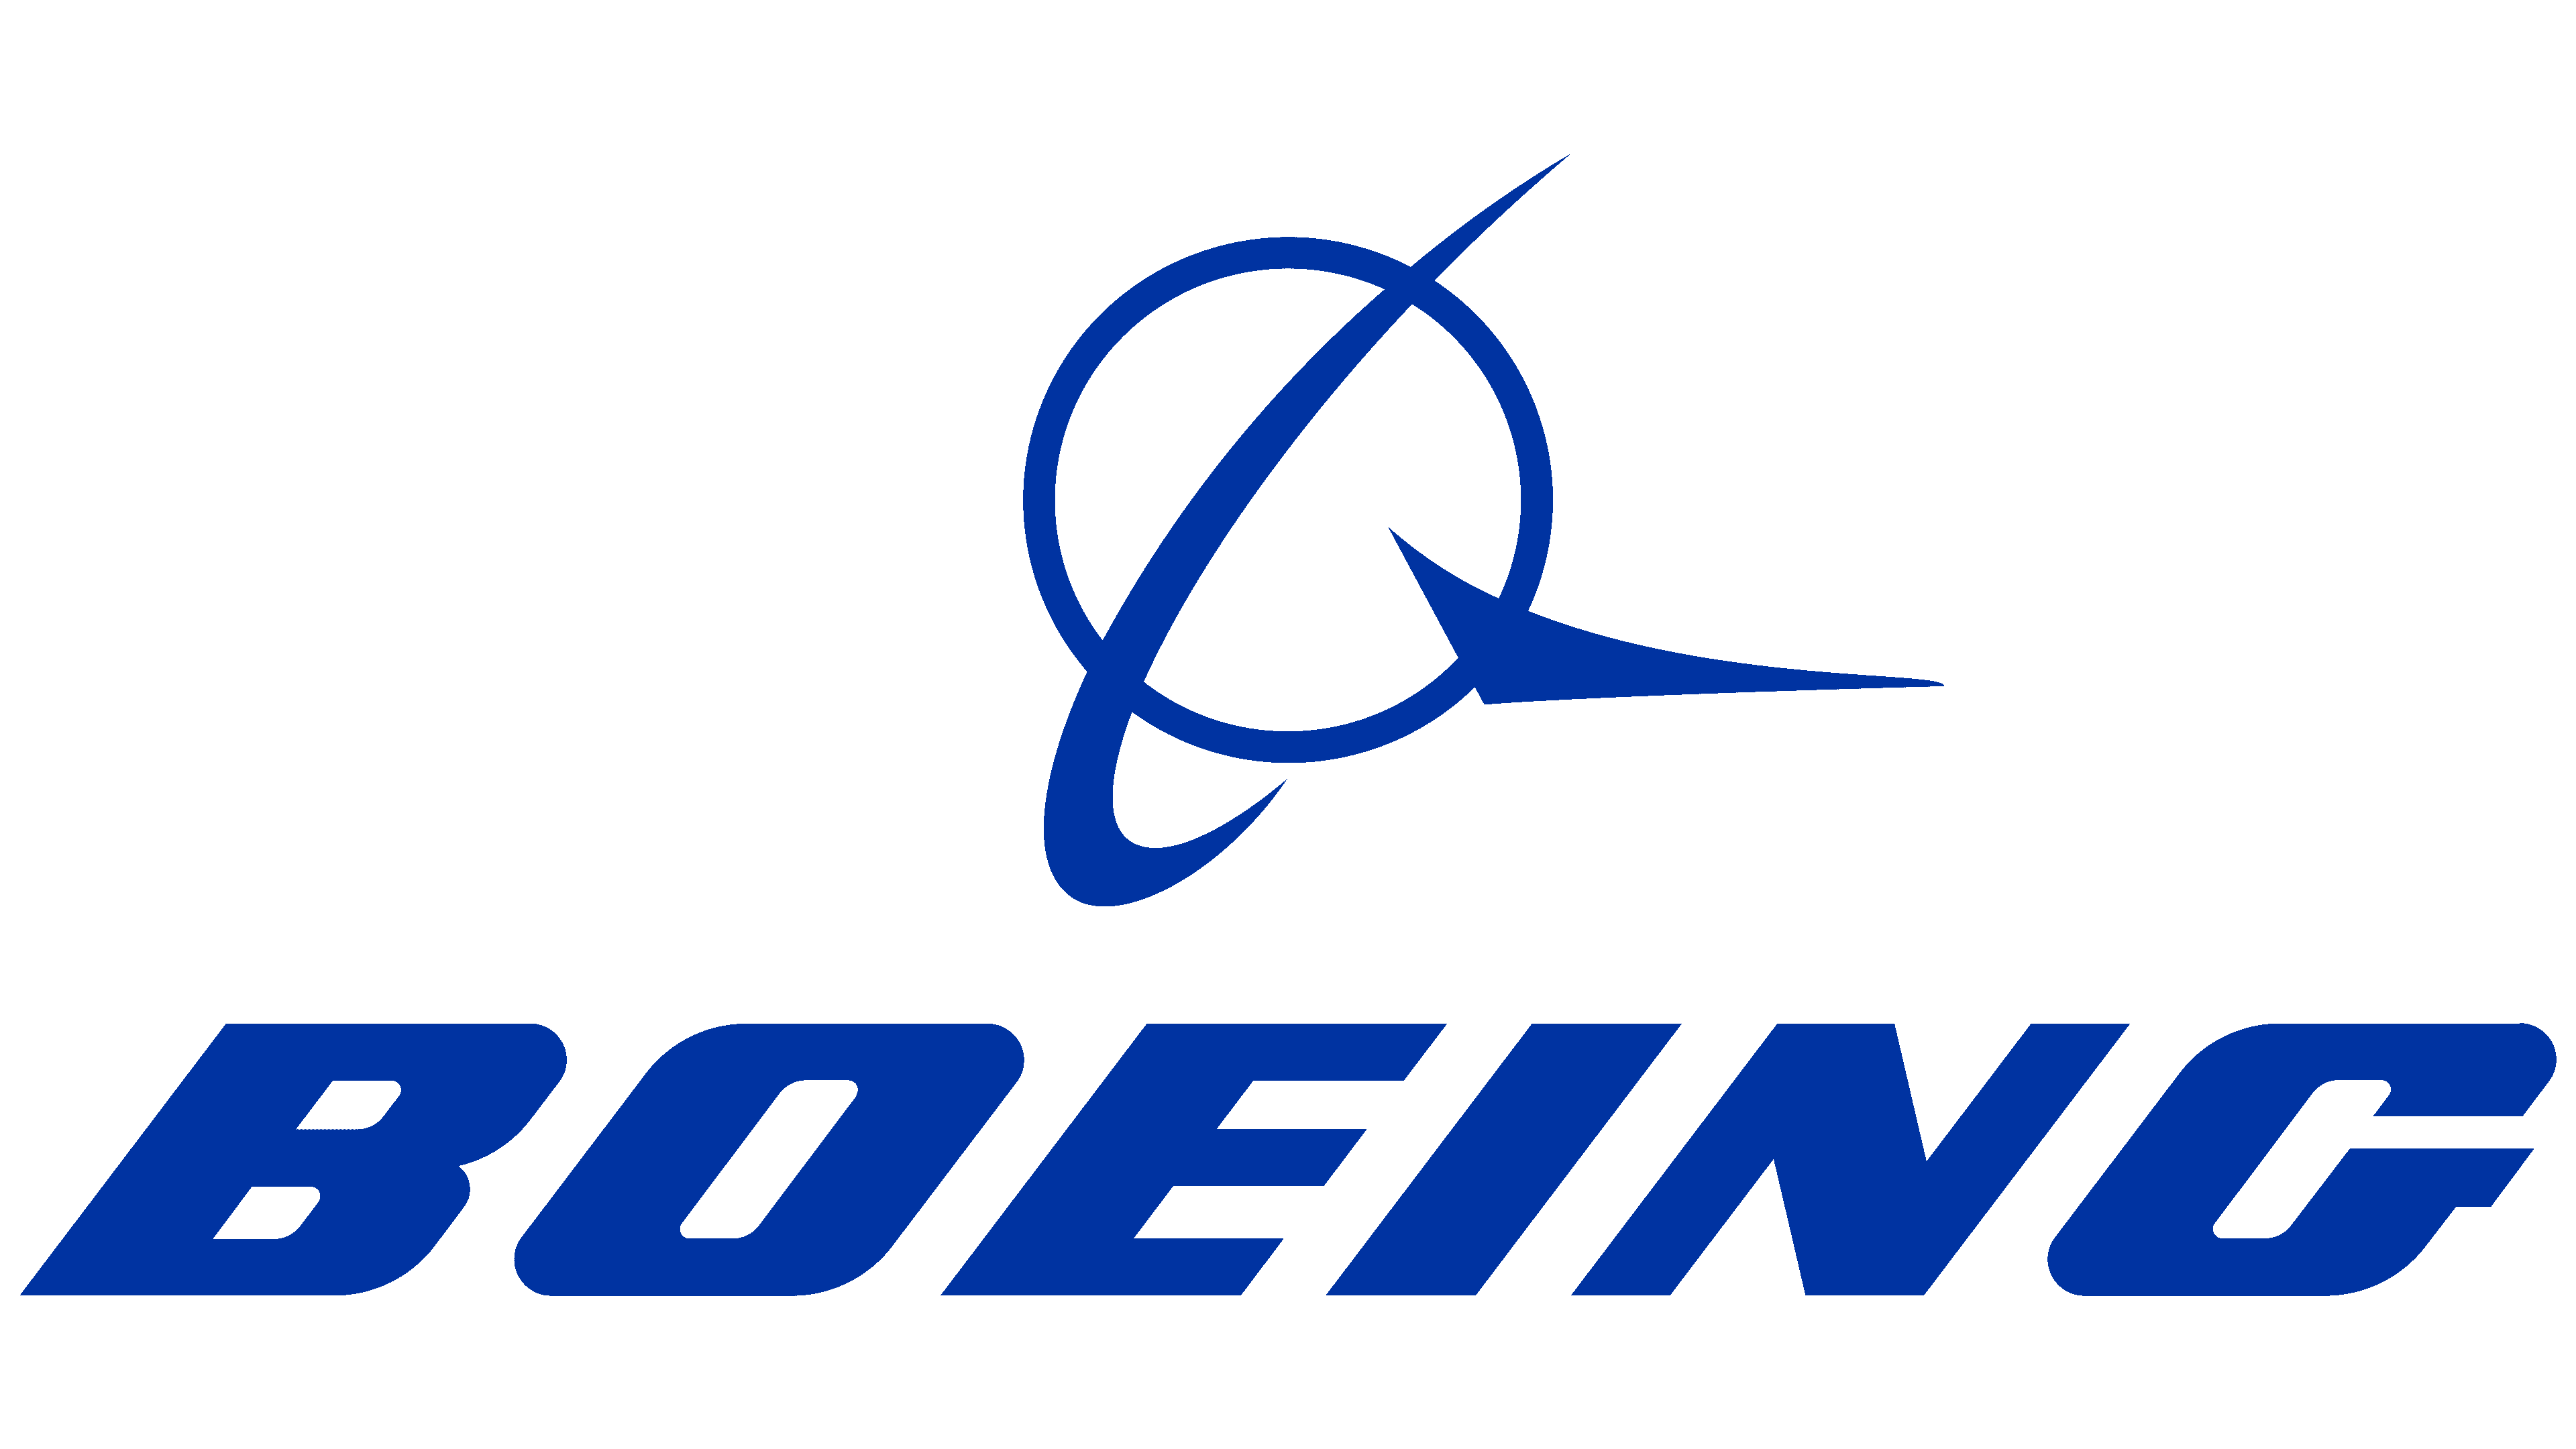 Boeing to Build Navy Aircraft at MidAmerica, Invest $200M